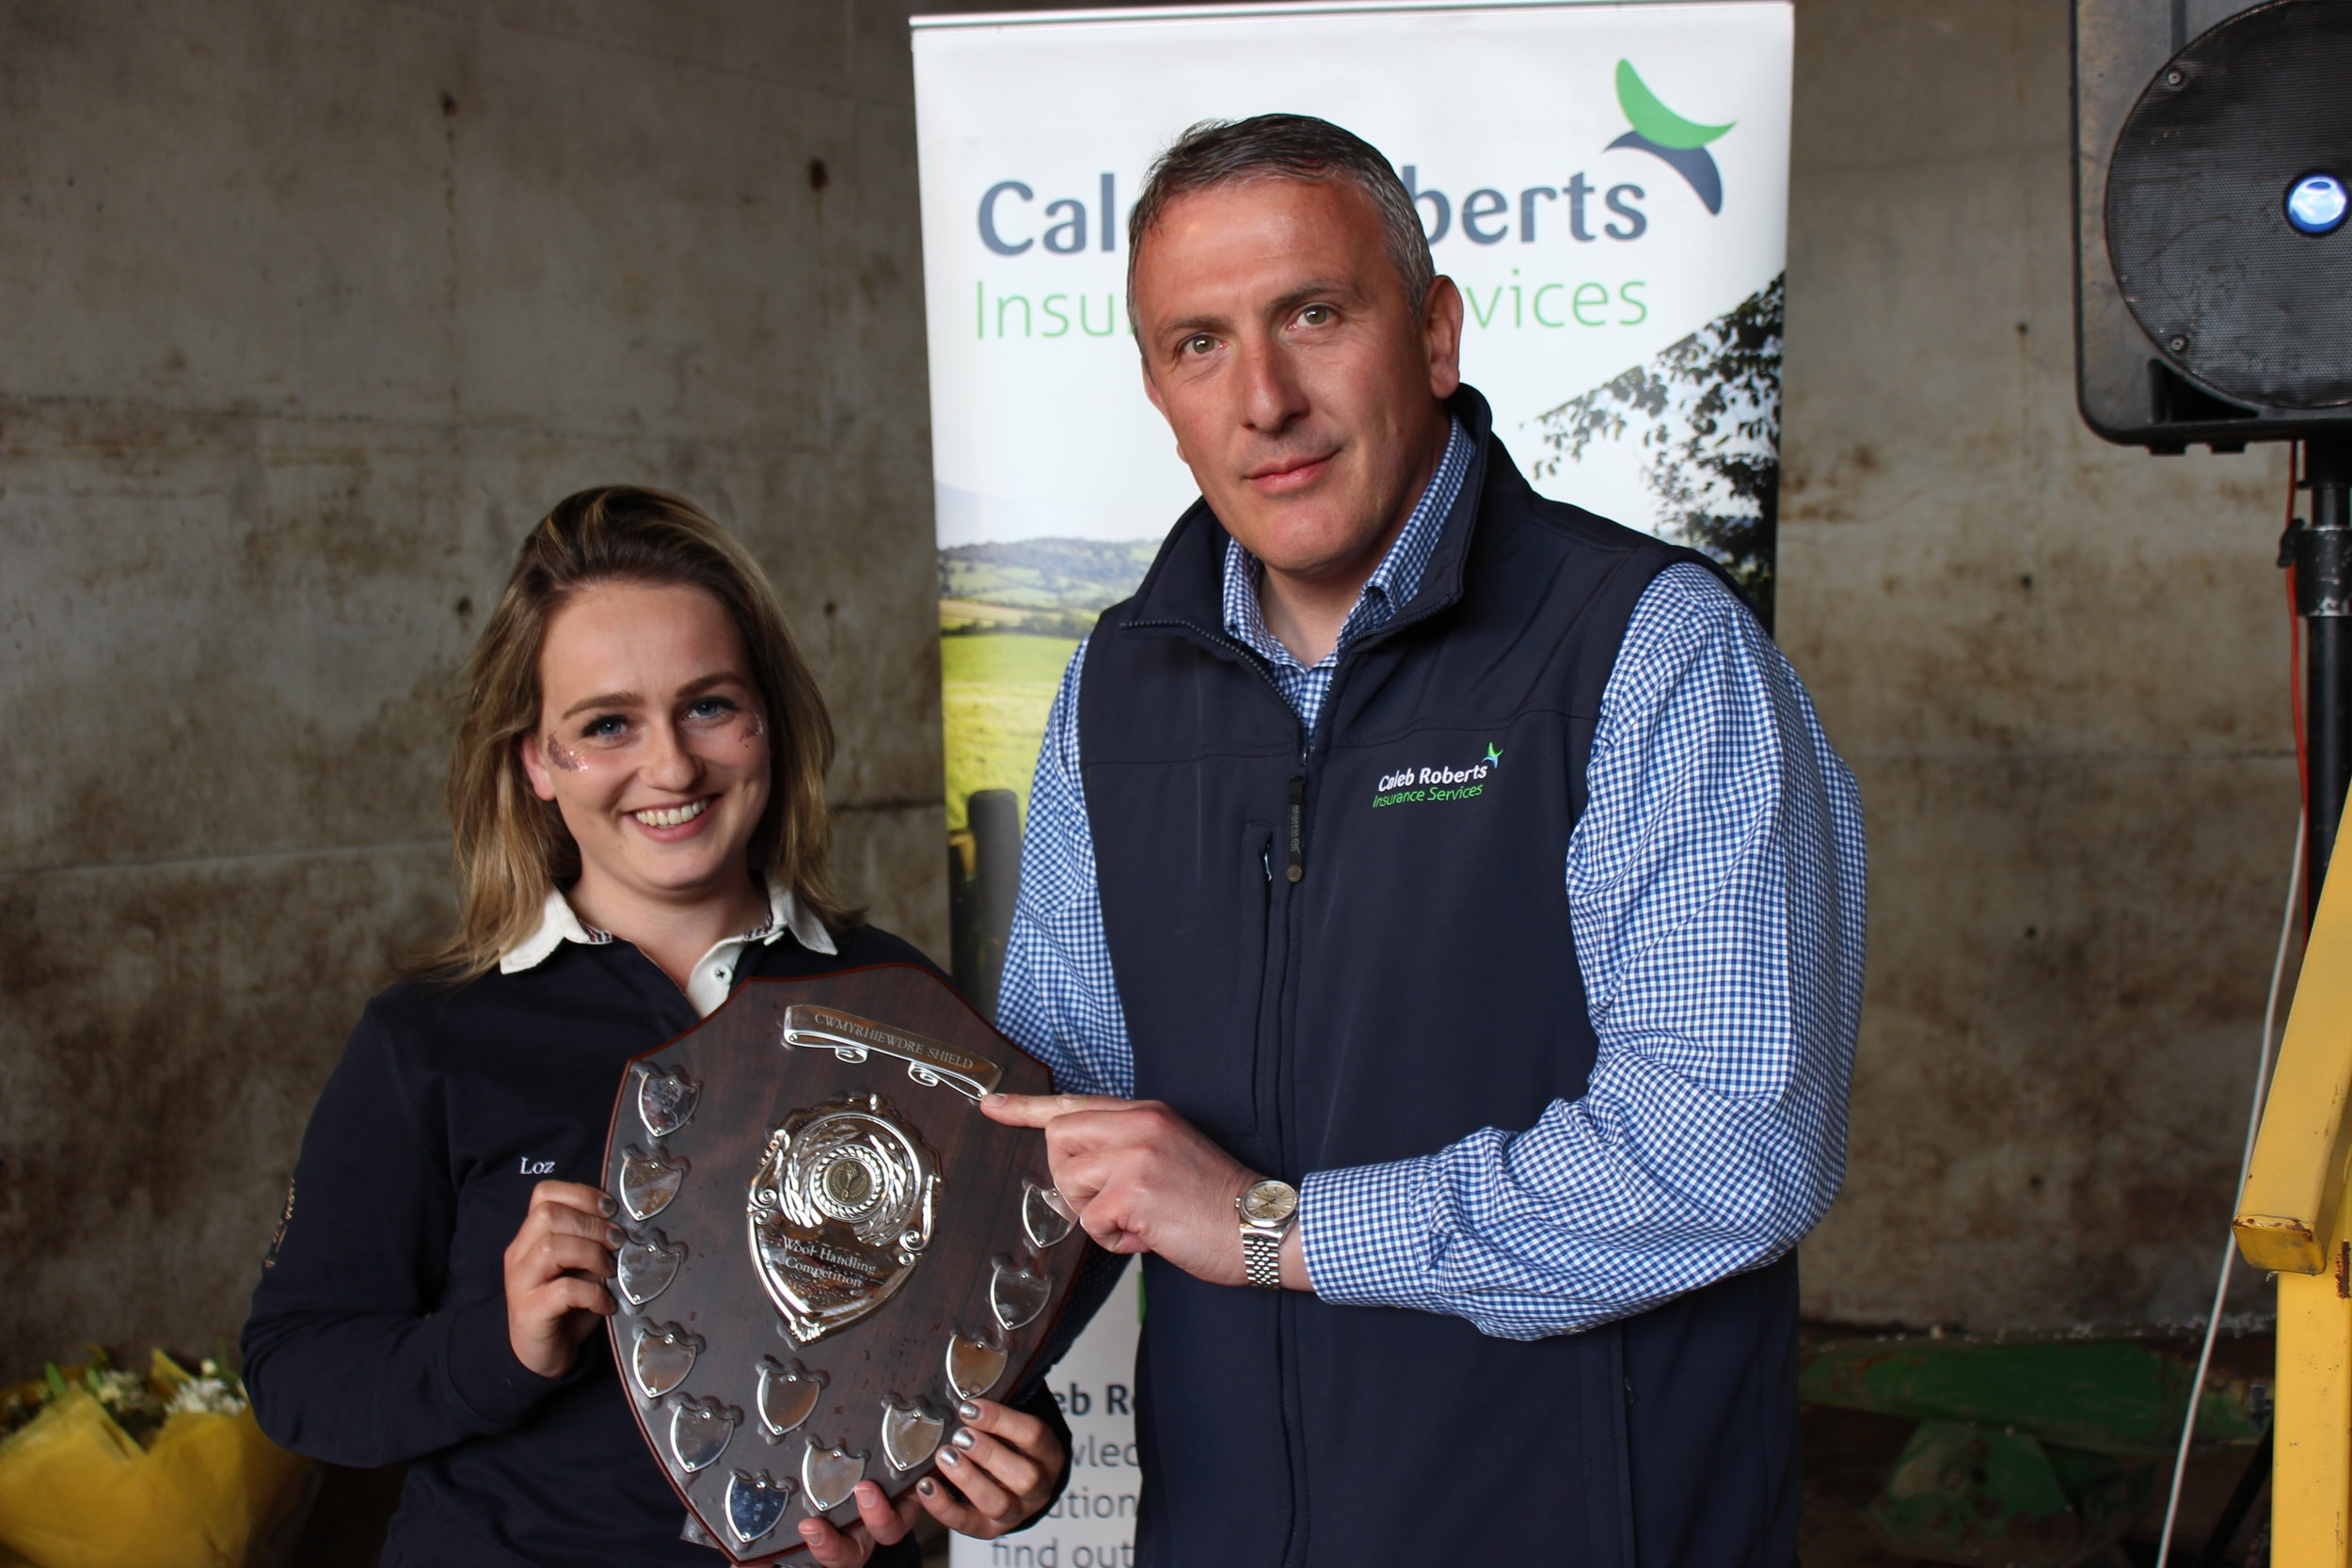 Lauren Morris, Radnor Valley YFC - Cwmyrhiewdre Shield for the Wool Handling competition being presented by Hugh Campbell, Caleb Roberts.